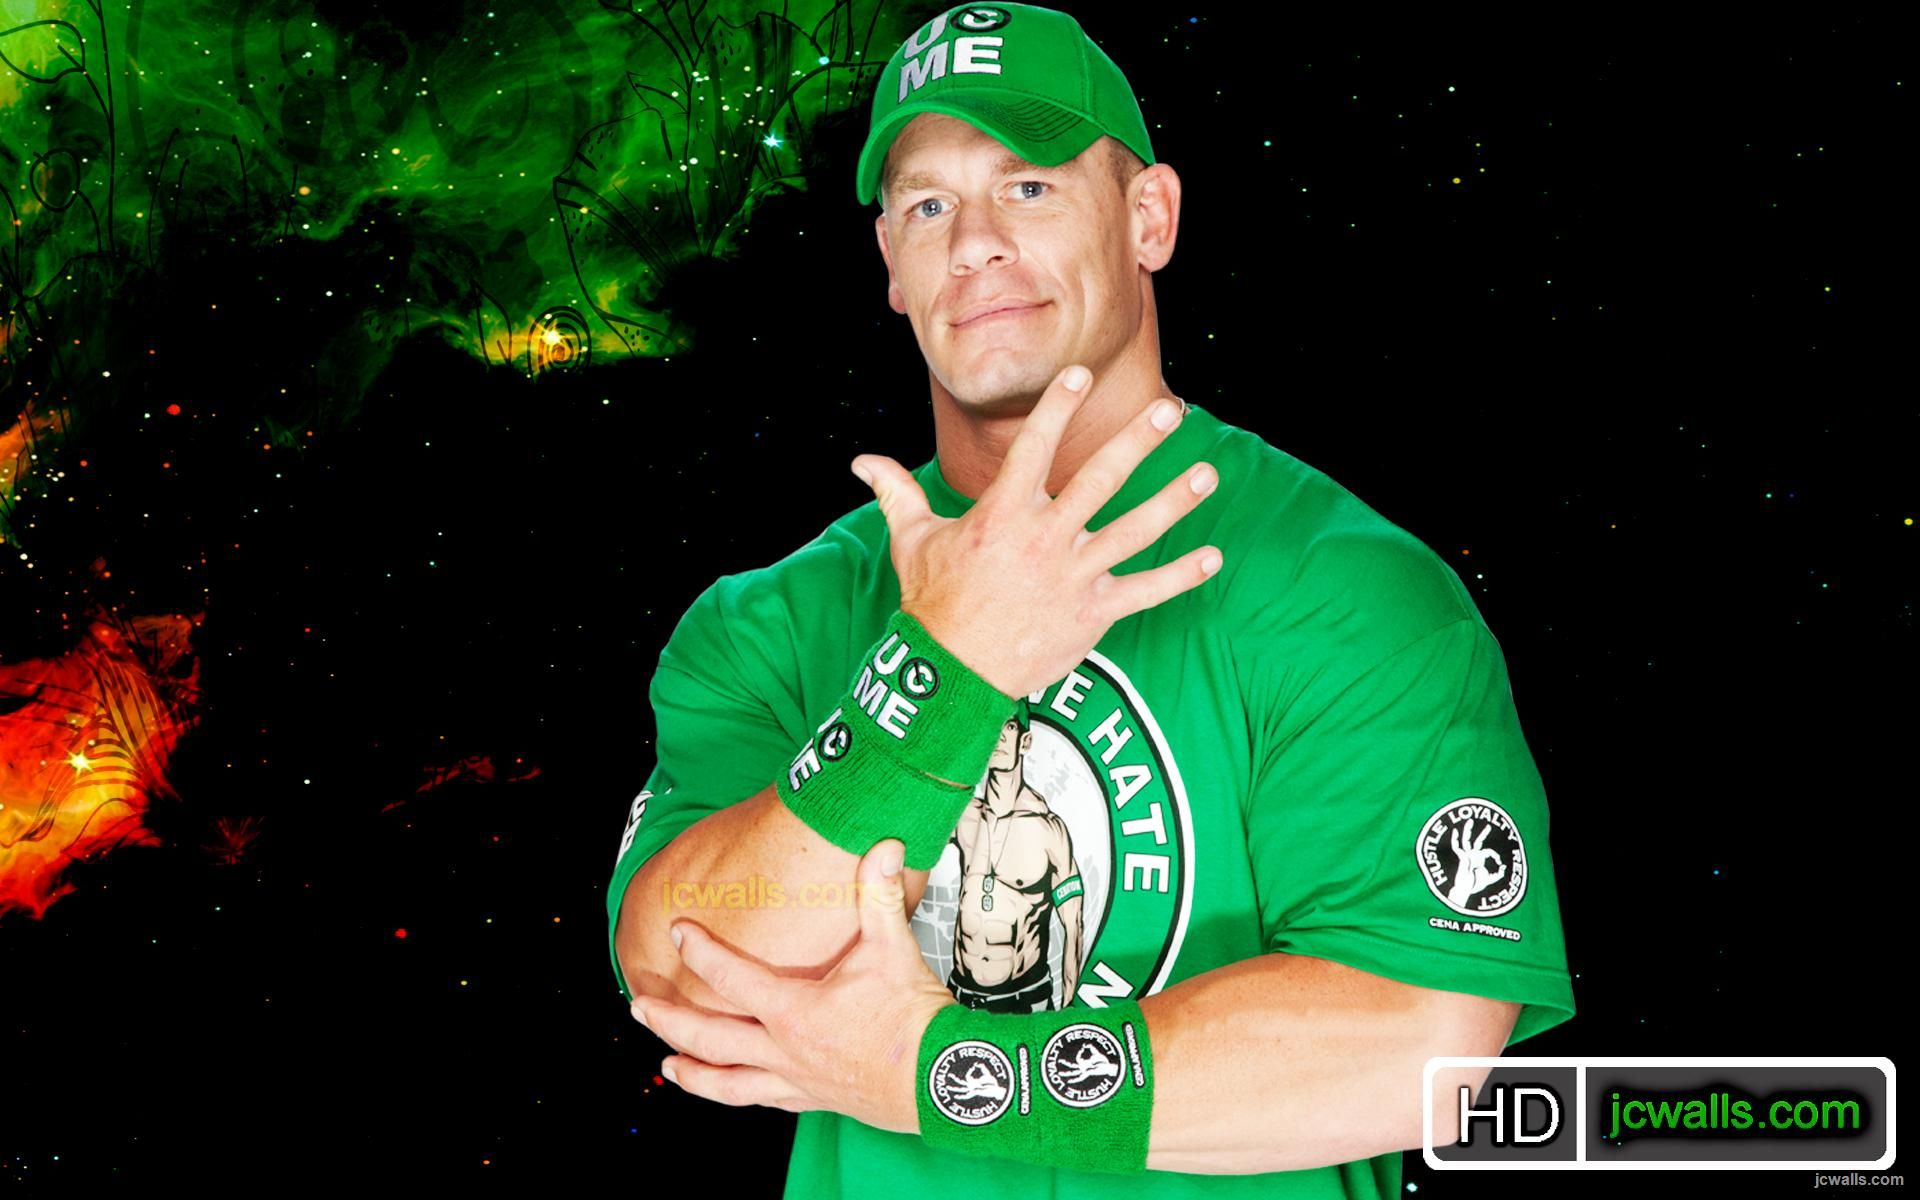 WWE John Cena Wallpaper | HD Wallpapers | Pinterest | John ...